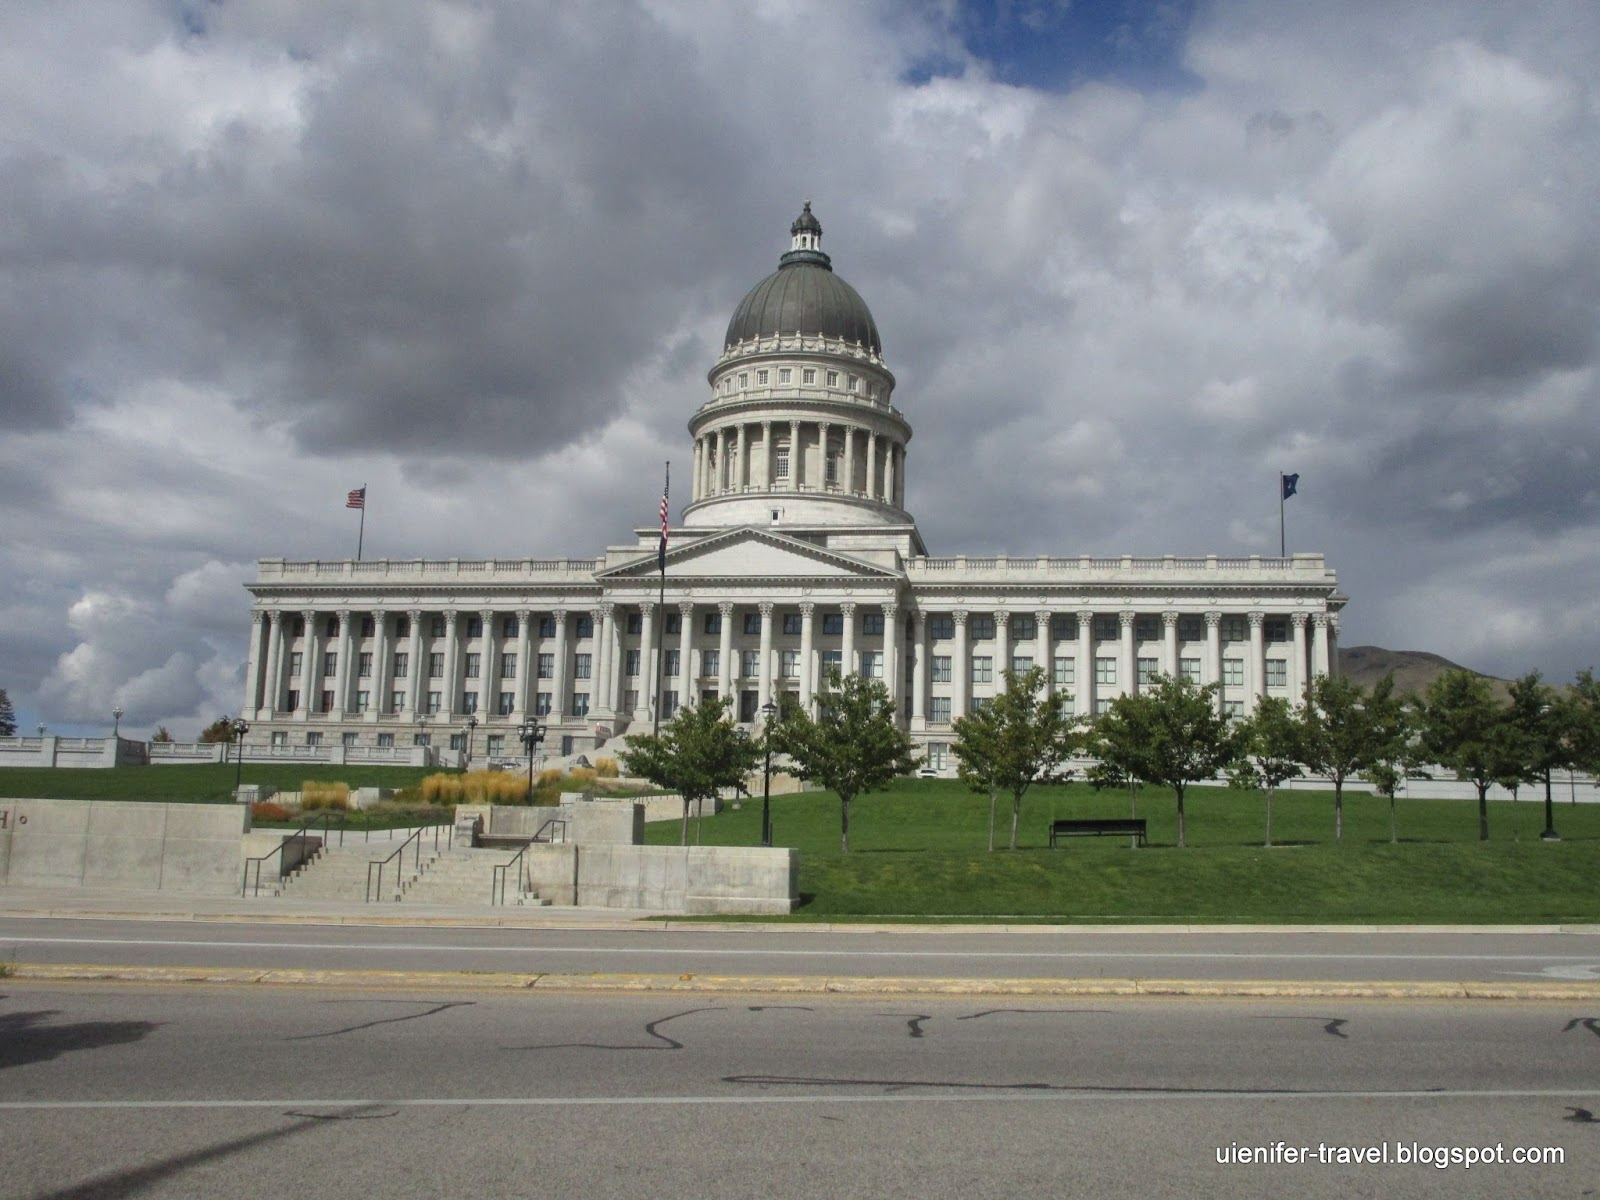 Капитолий штата Юта, Солт-Лейк-Сити, Юта (Utah State Capitol, Salt Lake City, Utah)